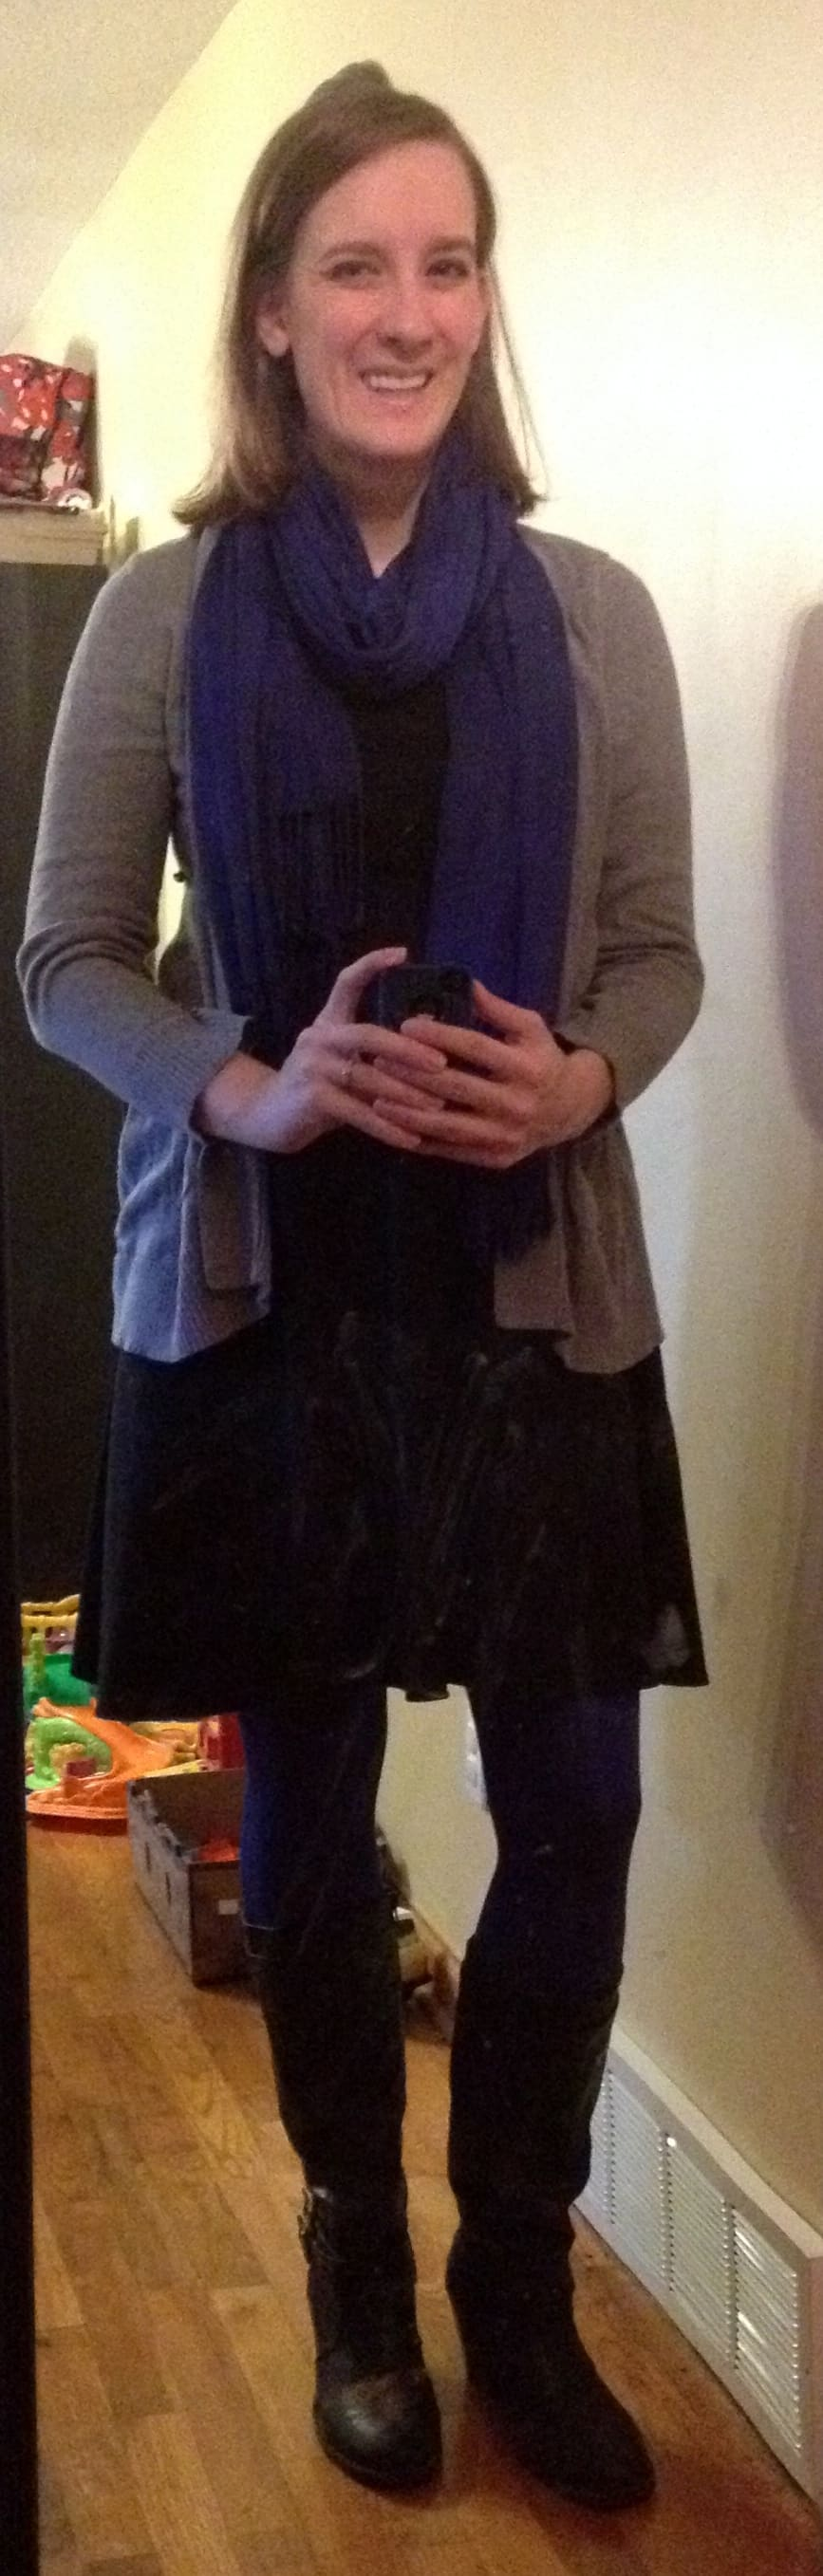 caption: little black dress - scored for less than $15 on Kohls' clearance rack, blue fleece-lined leggings from Cents of Style, gray cardigan, black heeled boots, blue scarf